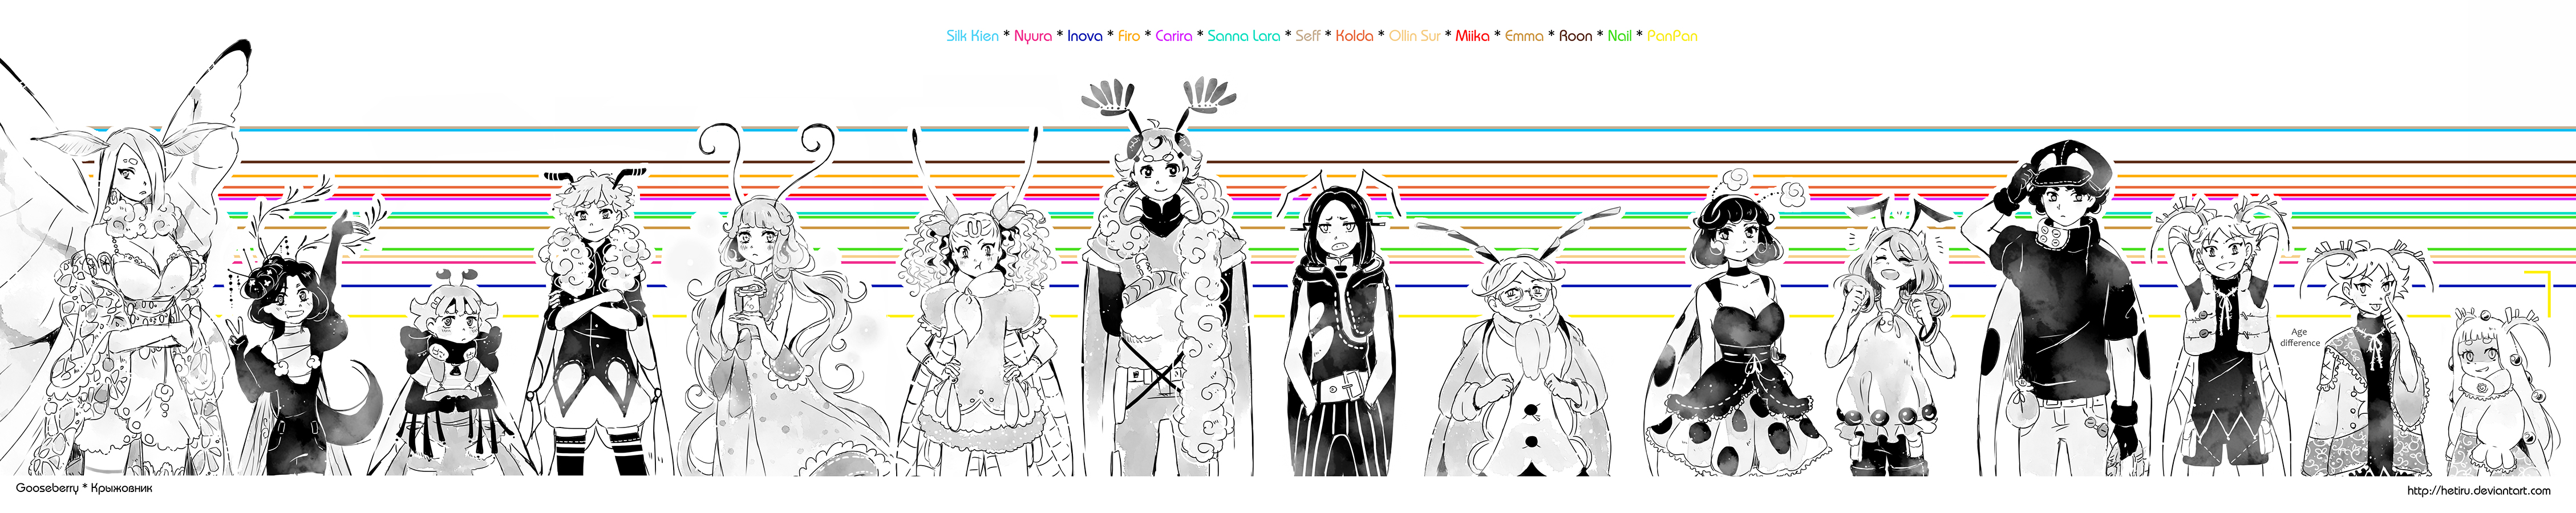 .GOOSEBERRY: characters' height.